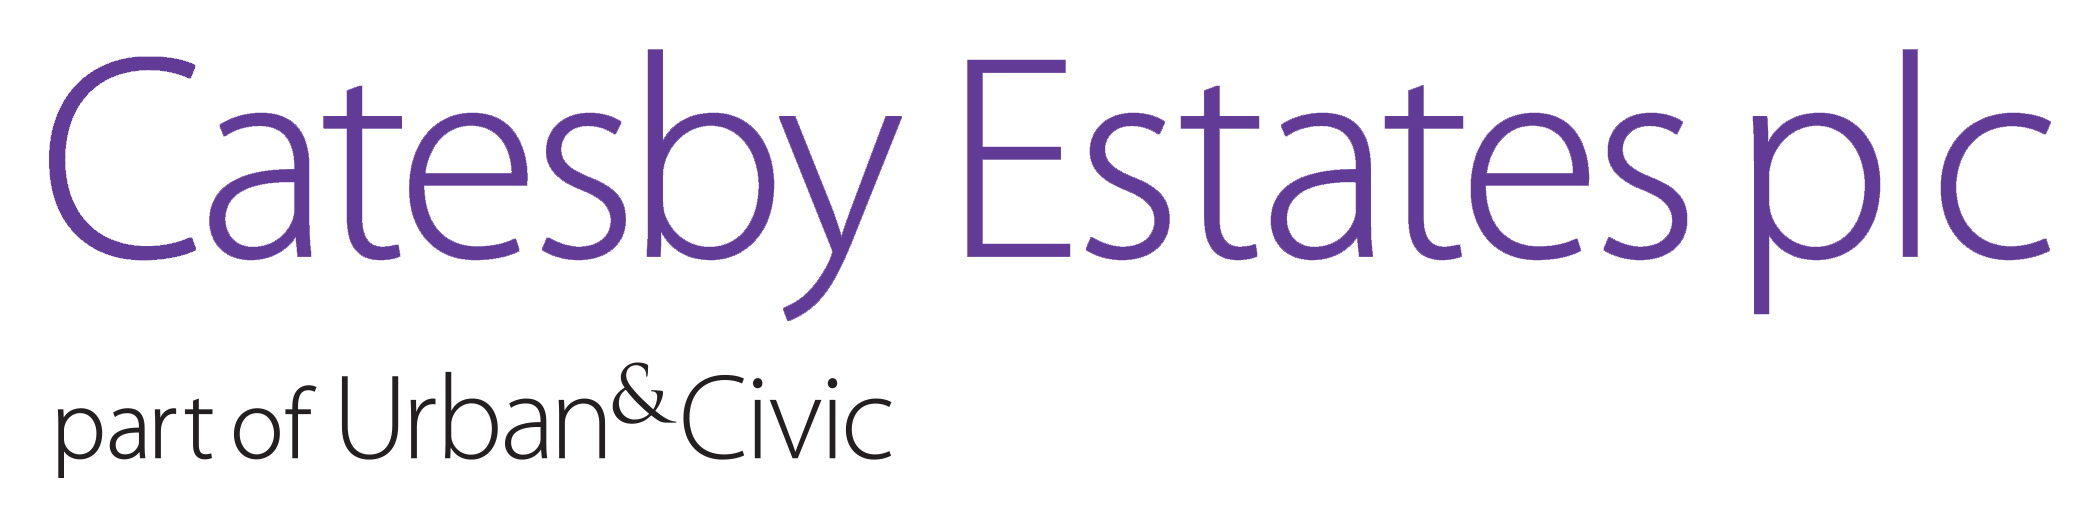 Catesby Estates plc